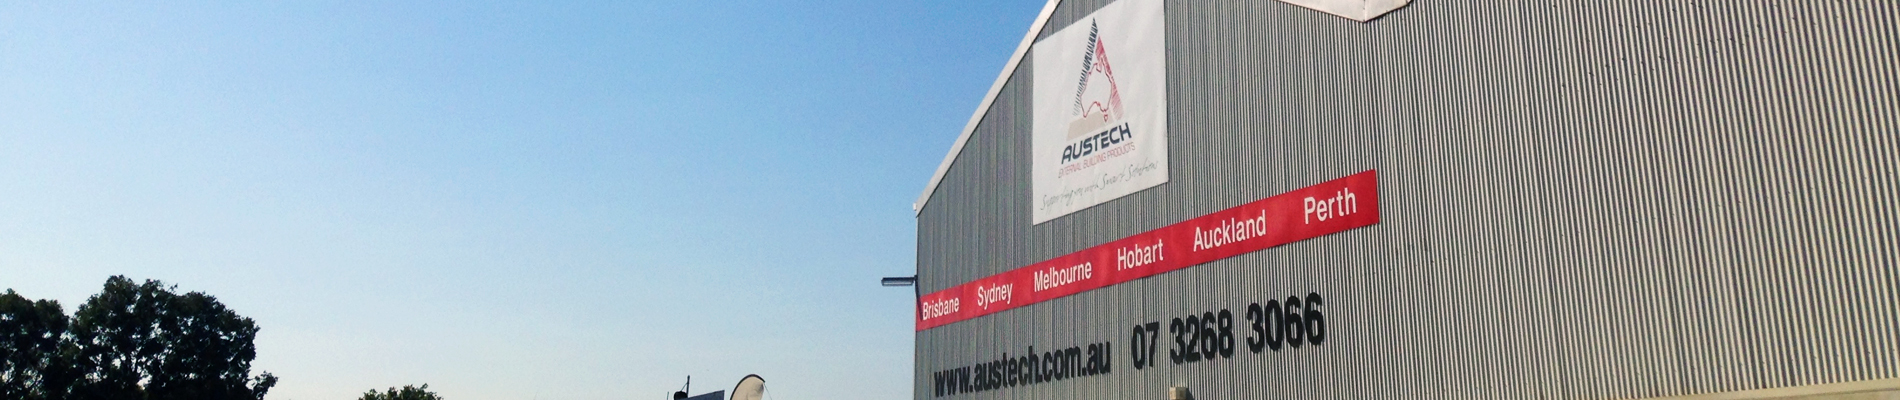 austech-warehouse